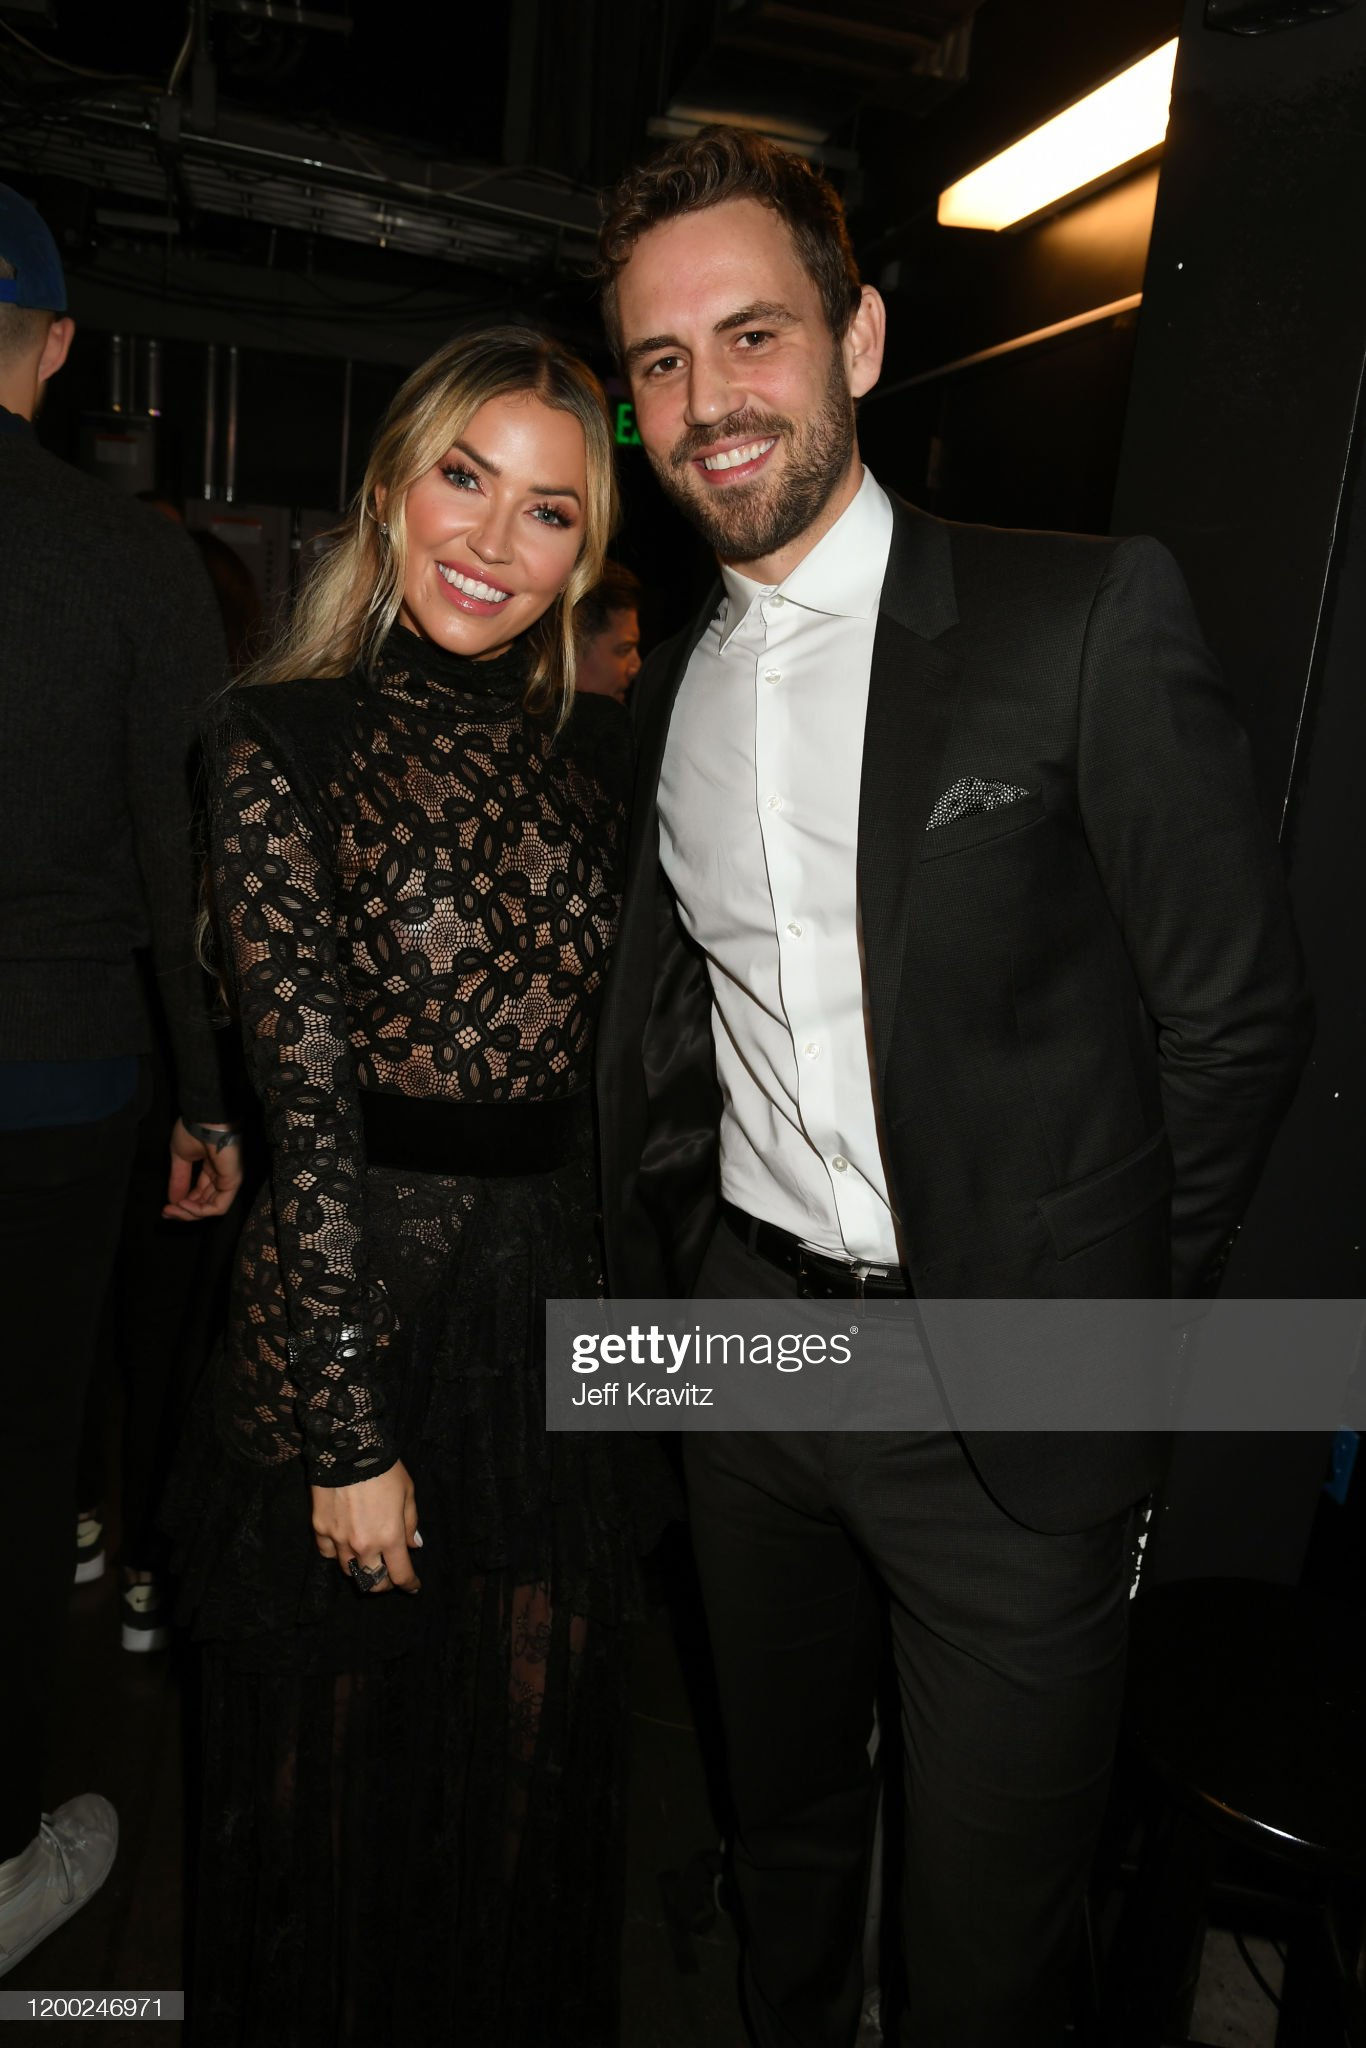 Kaitlyn Bristowe - Jason Tartick - FAN Forum - Discussion  - Page 51 Kaitlyn-bristowe-and-nick-viall-attend-the-2020-iheartradio-podcast-picture-id1200246971?s=2048x2048